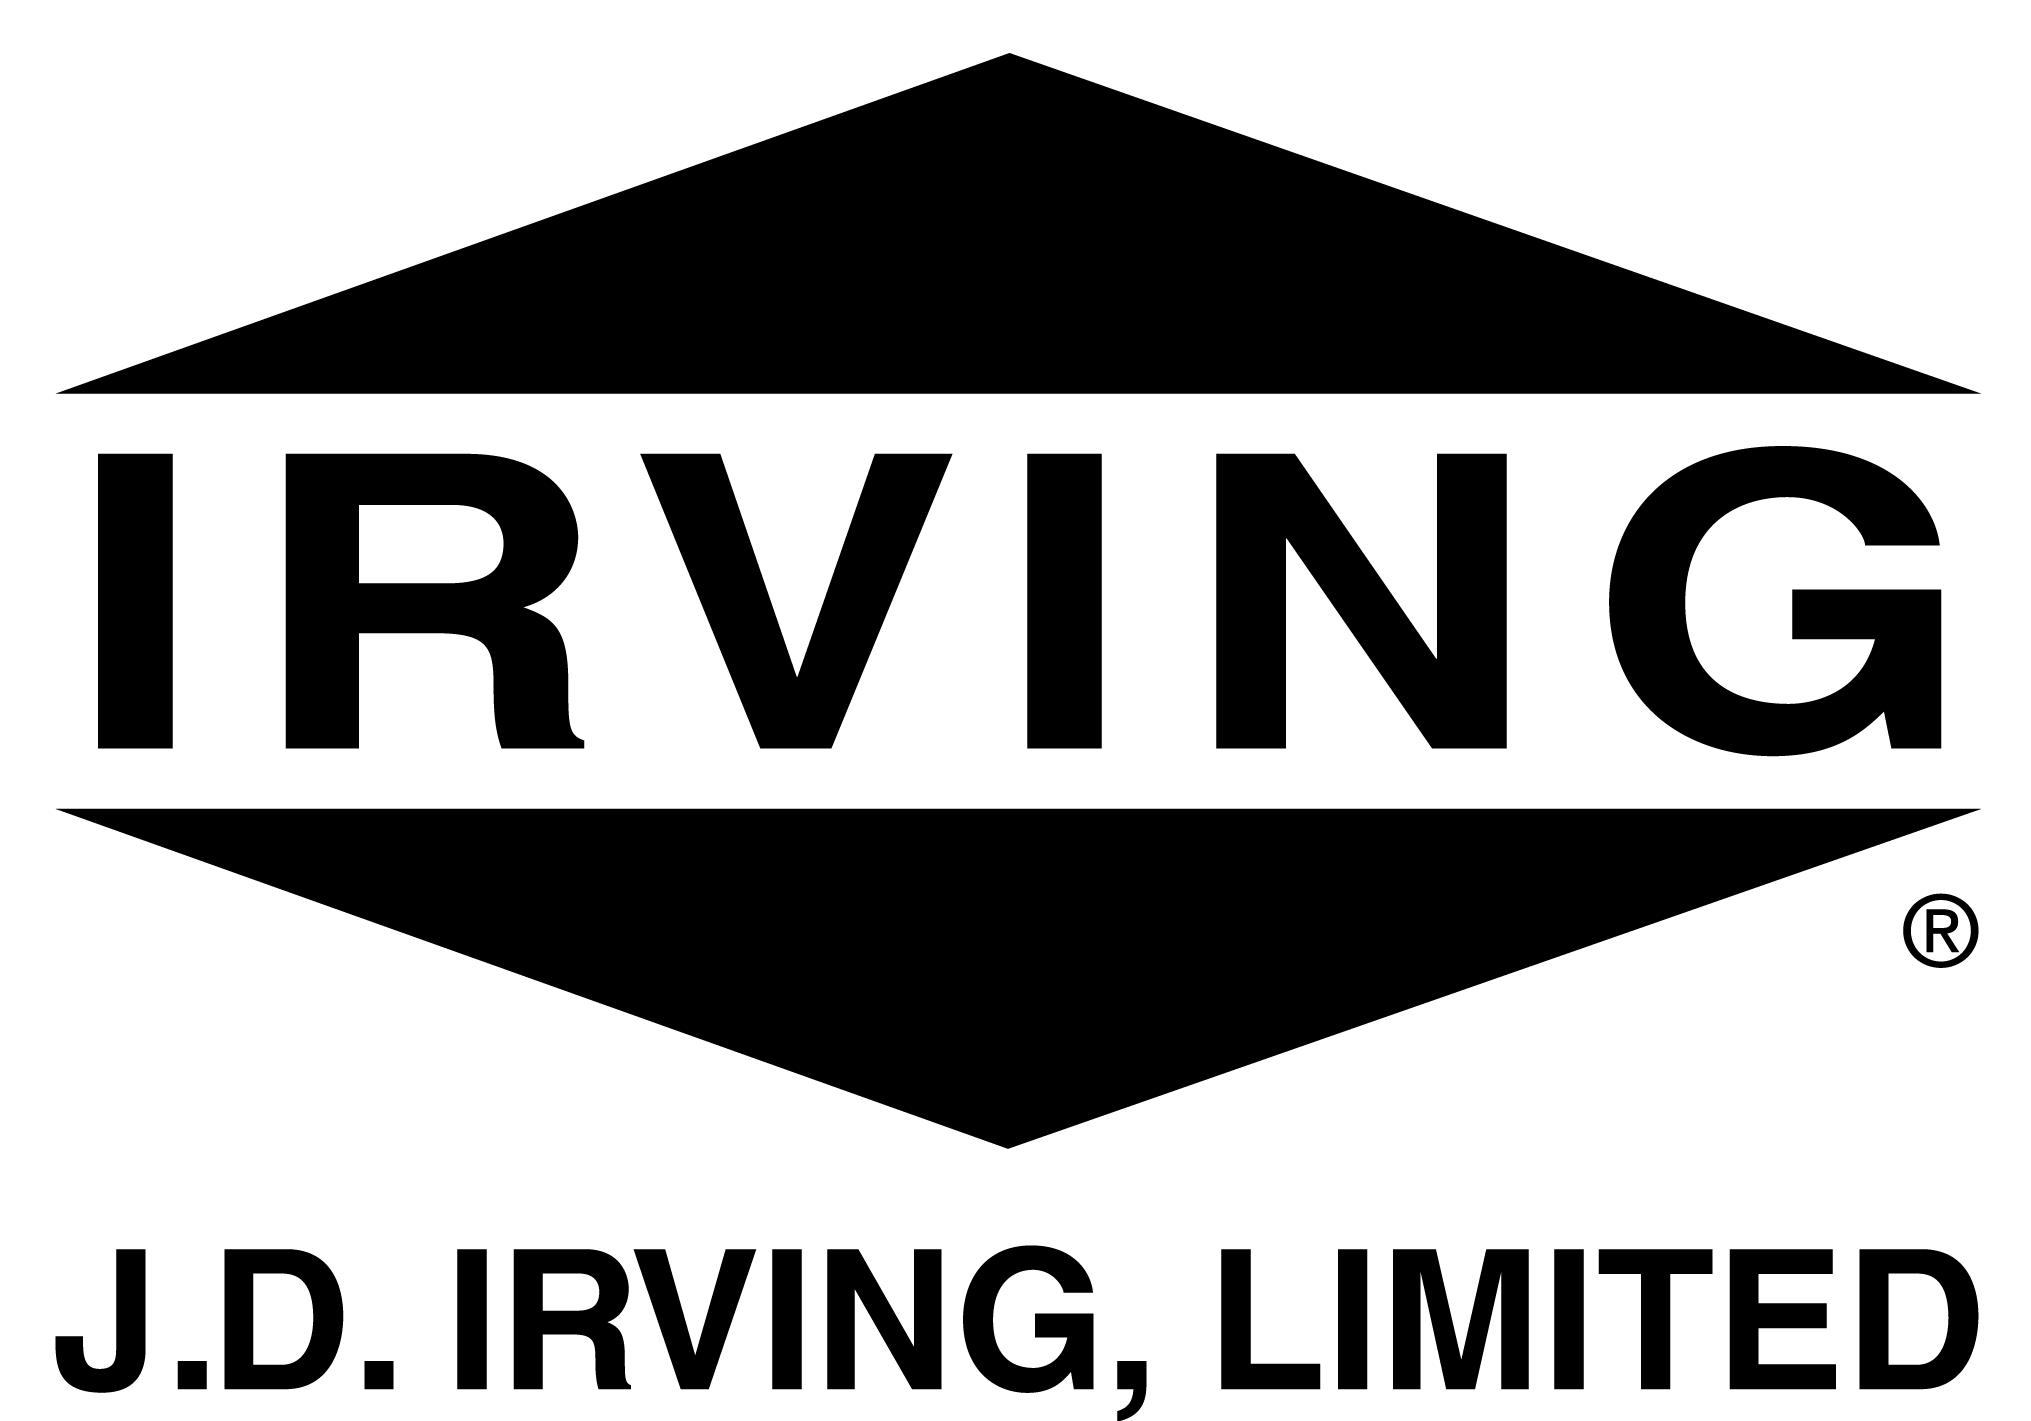 JD Irving Limited_R_BLK